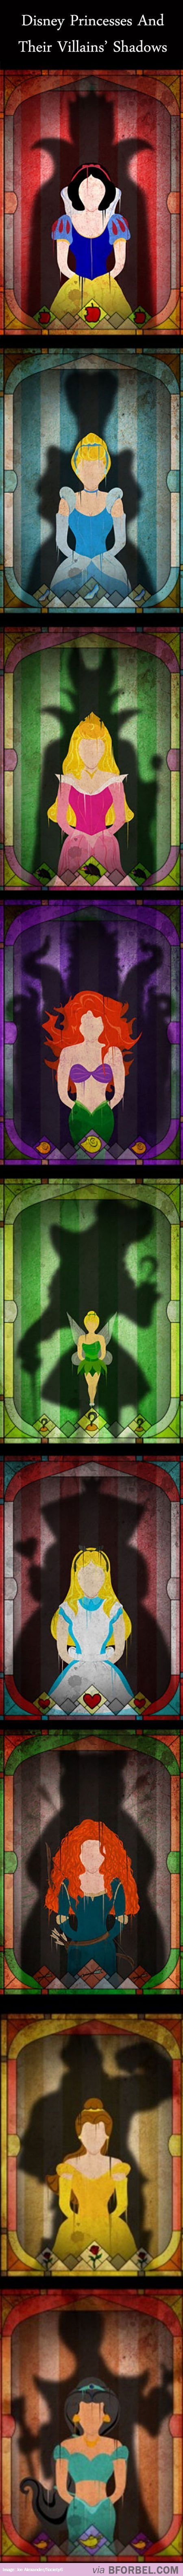 Disney princess and theirs villain´s shadows ^^